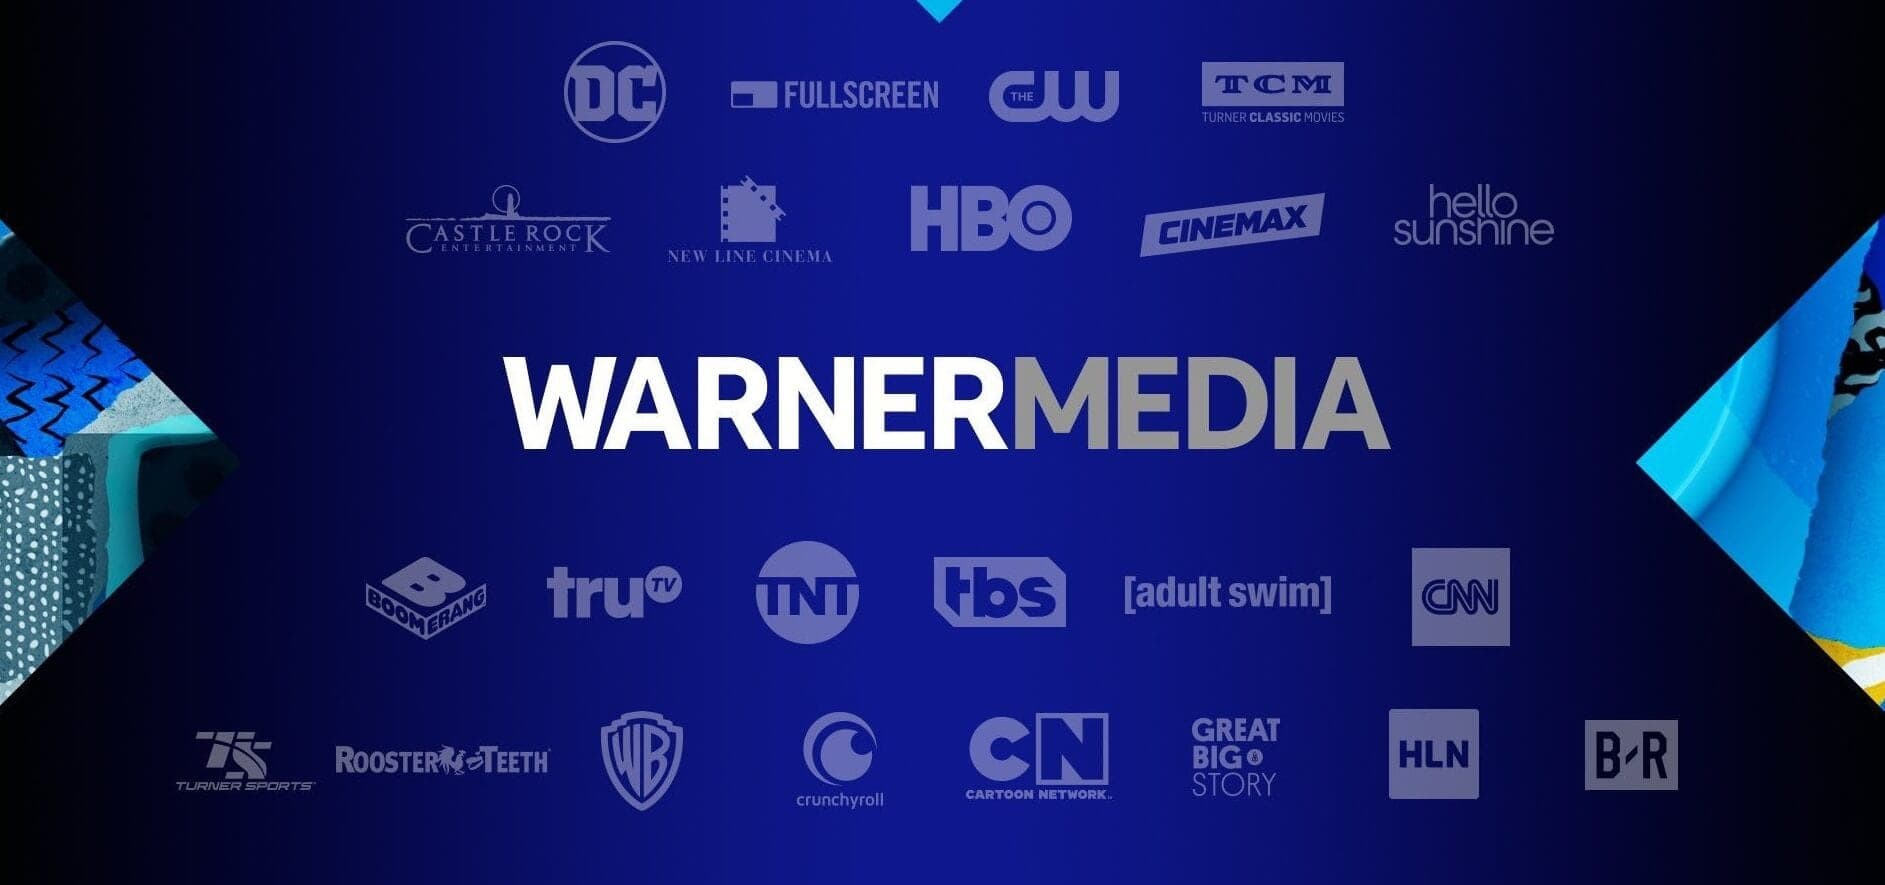 Greg Berlanti New Slate of Shows for HBO Max and DC Universe Featured Warnermedia